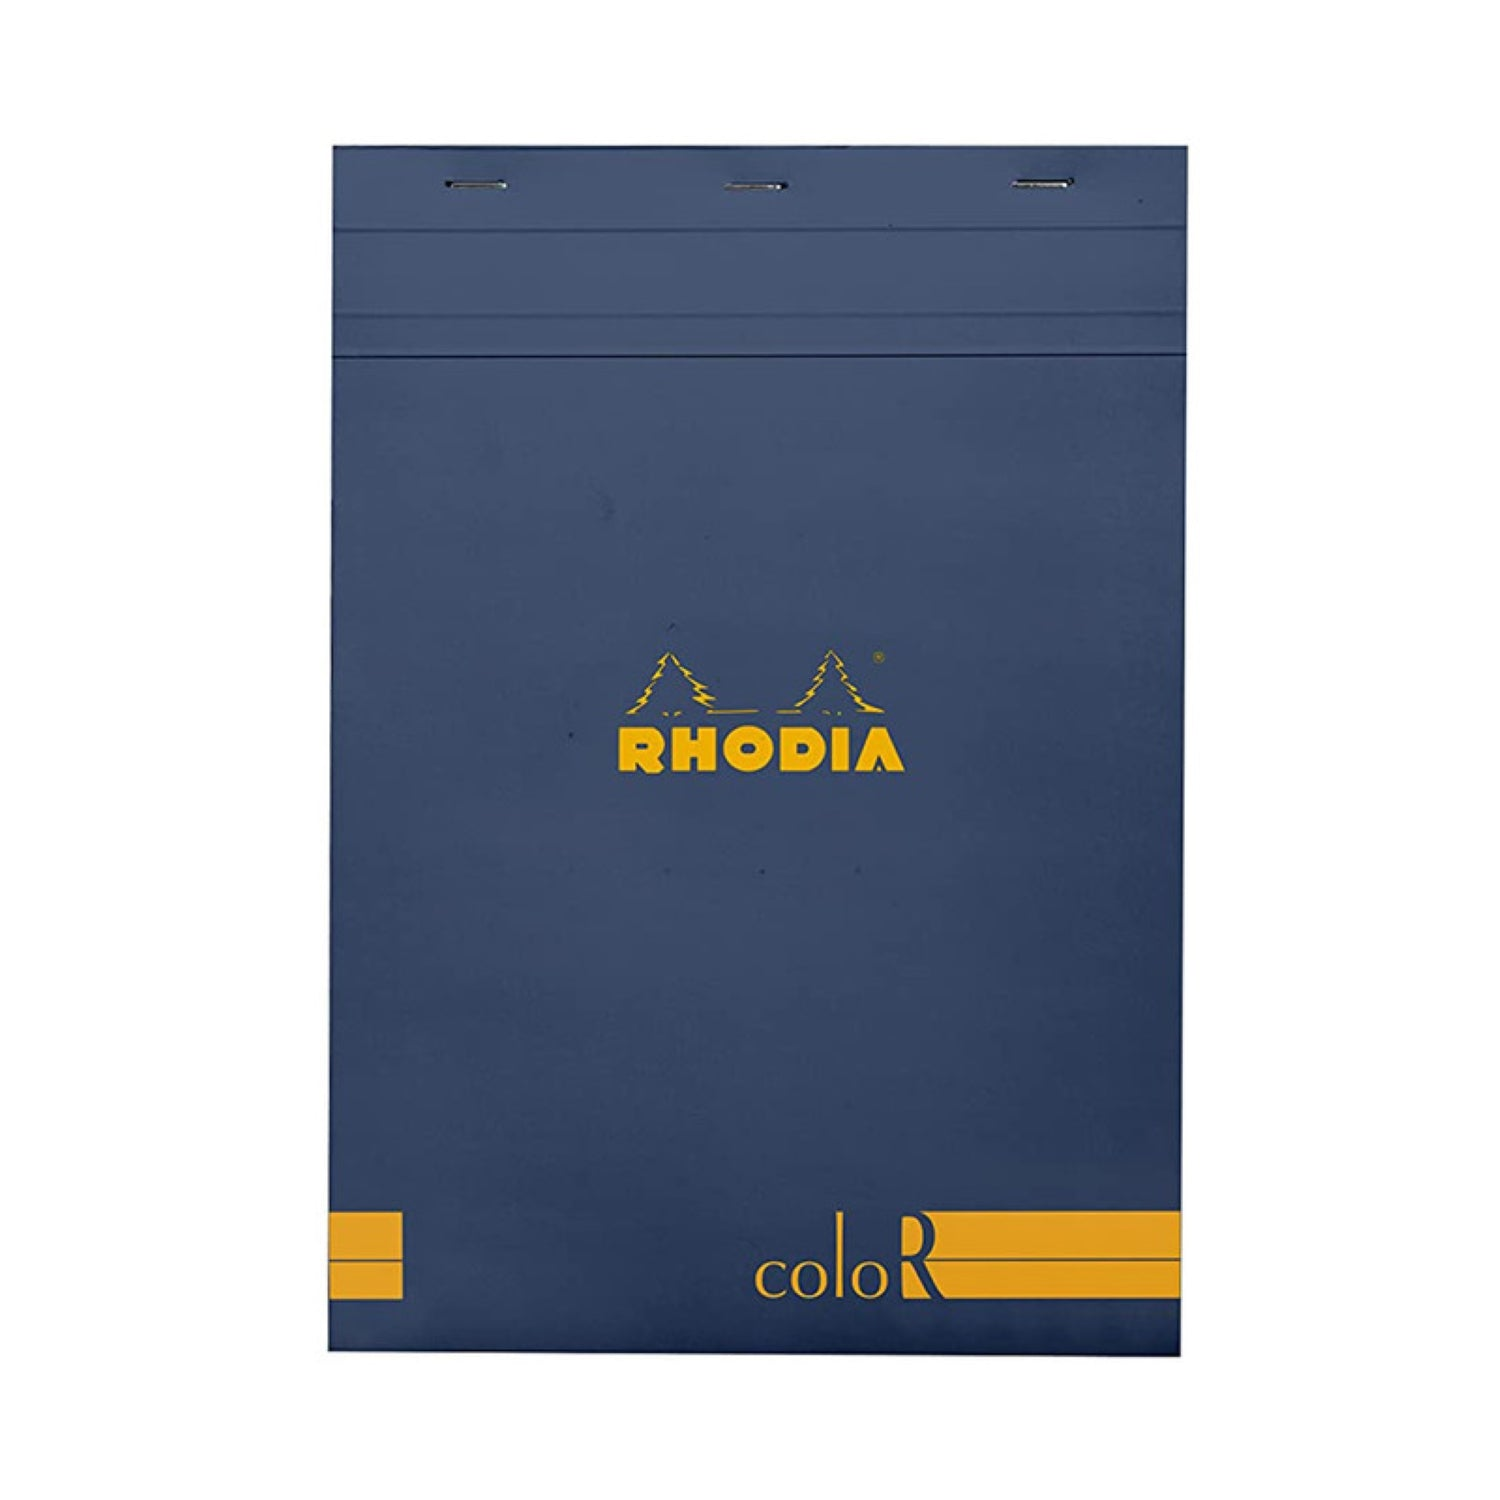 RHODIA Pad 18 R PREMIUM PAD Sapphire Blue Cover LINED